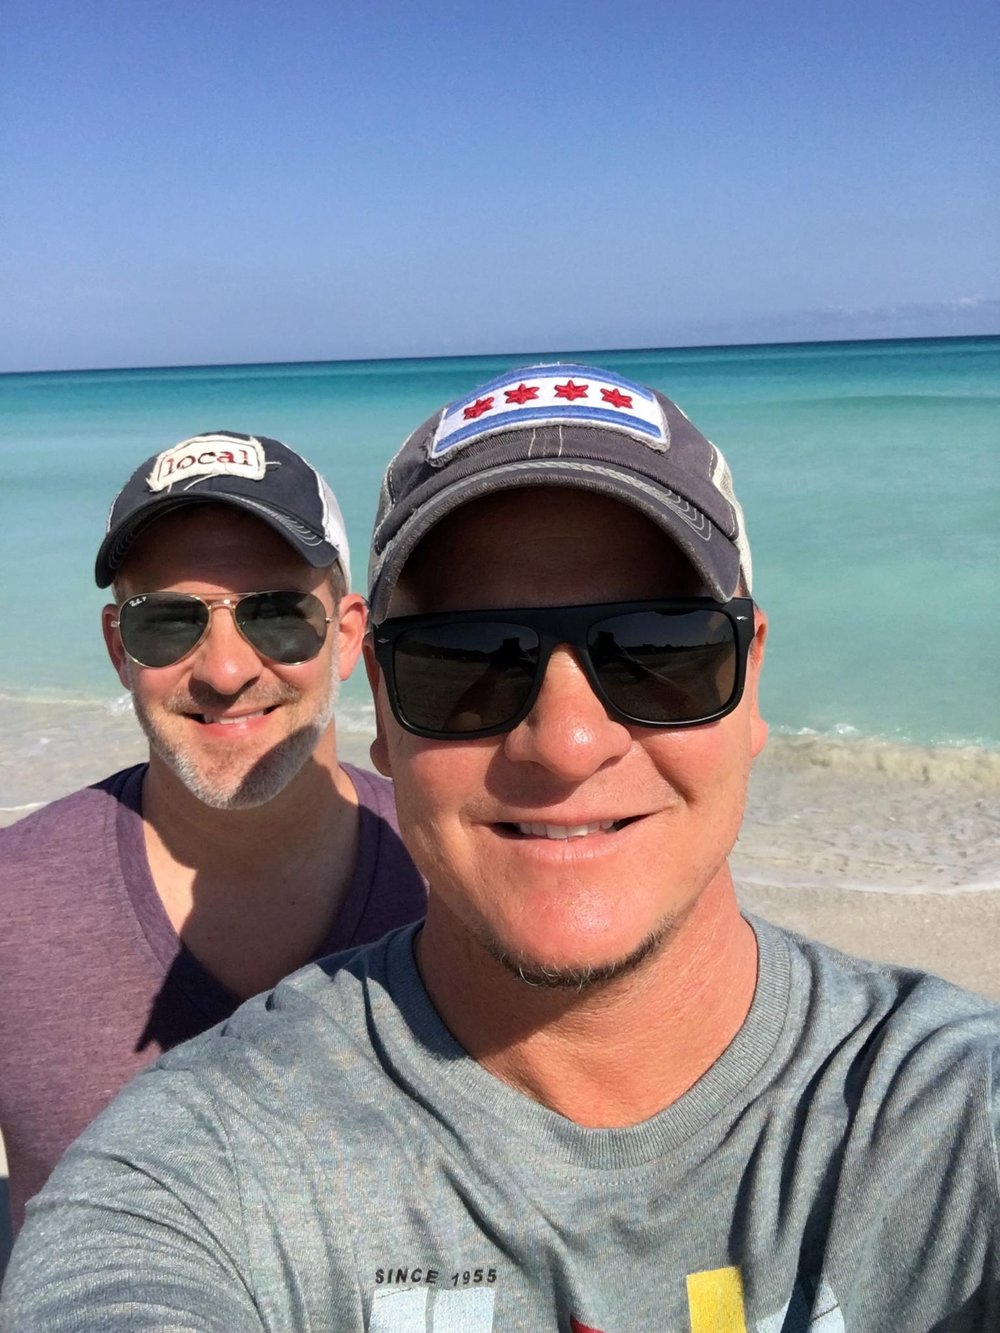 Life's a beach for Scott and Joe